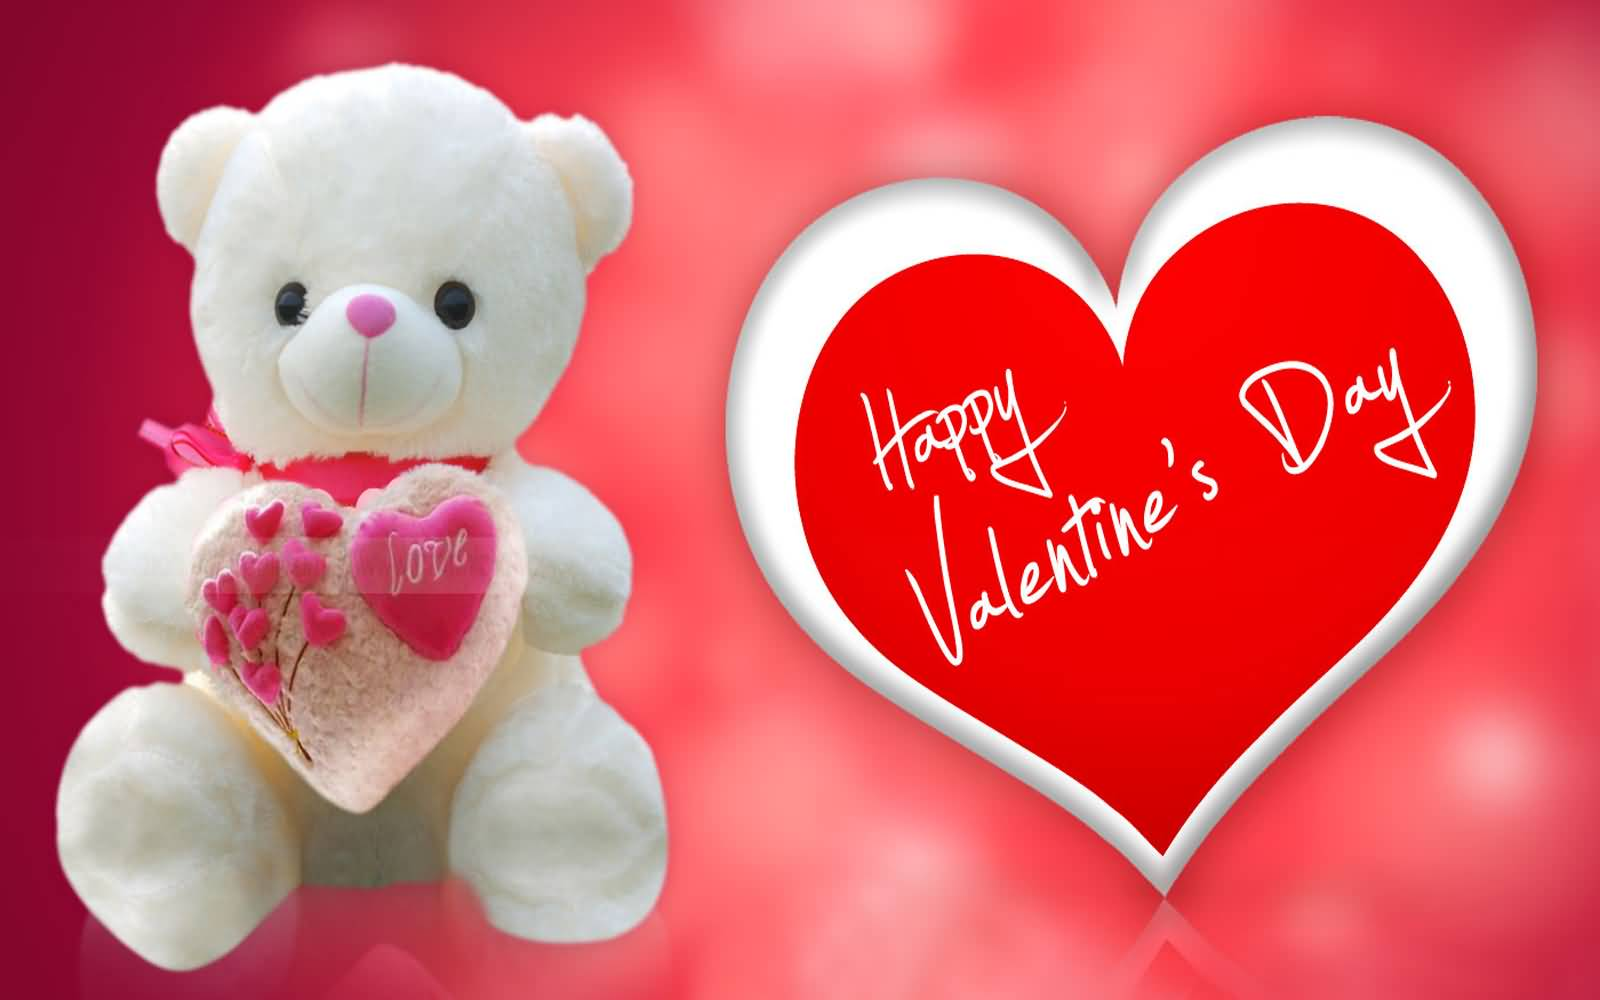 50 most beautiful valentines day greeting card happy valentines day teddy bear greeting card kristyandbryce Choice Image